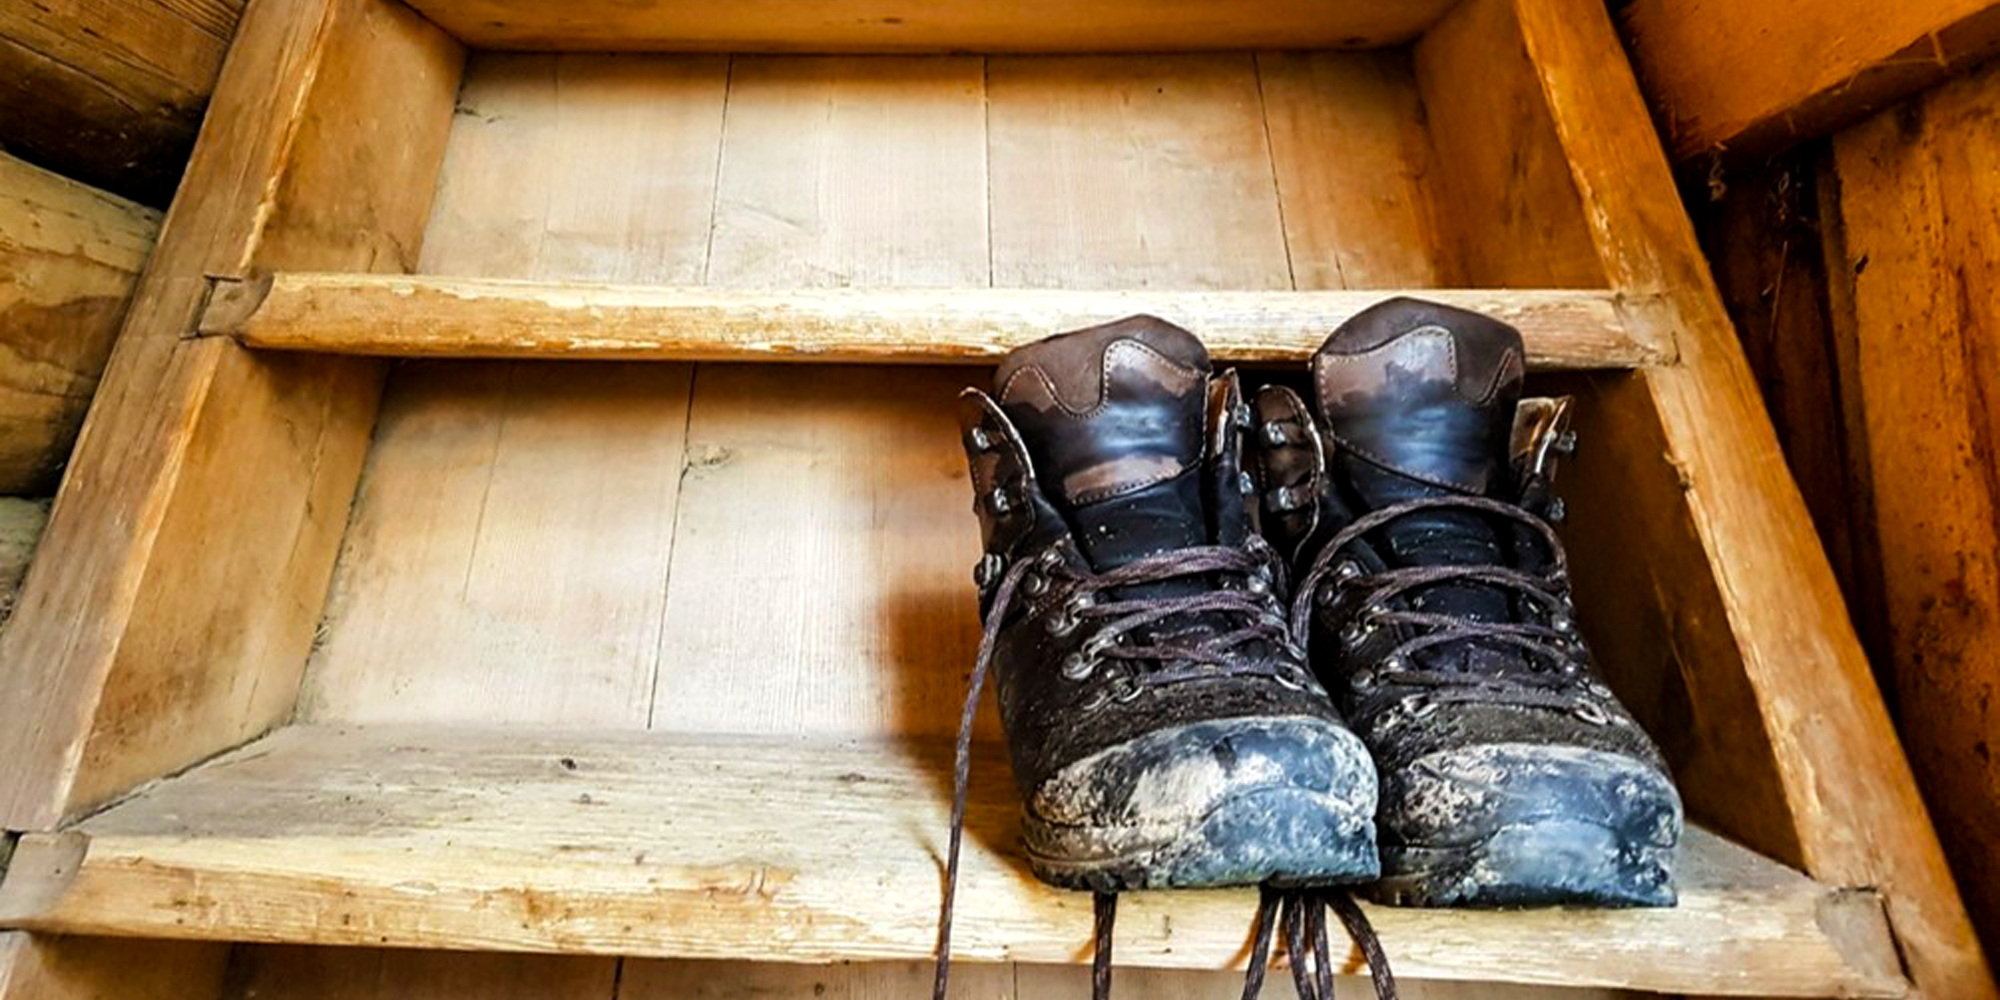 Hiking shoes resting on the stairs up to the accommodation quarters at Munkeby. Copyright: Munkeby Herberge